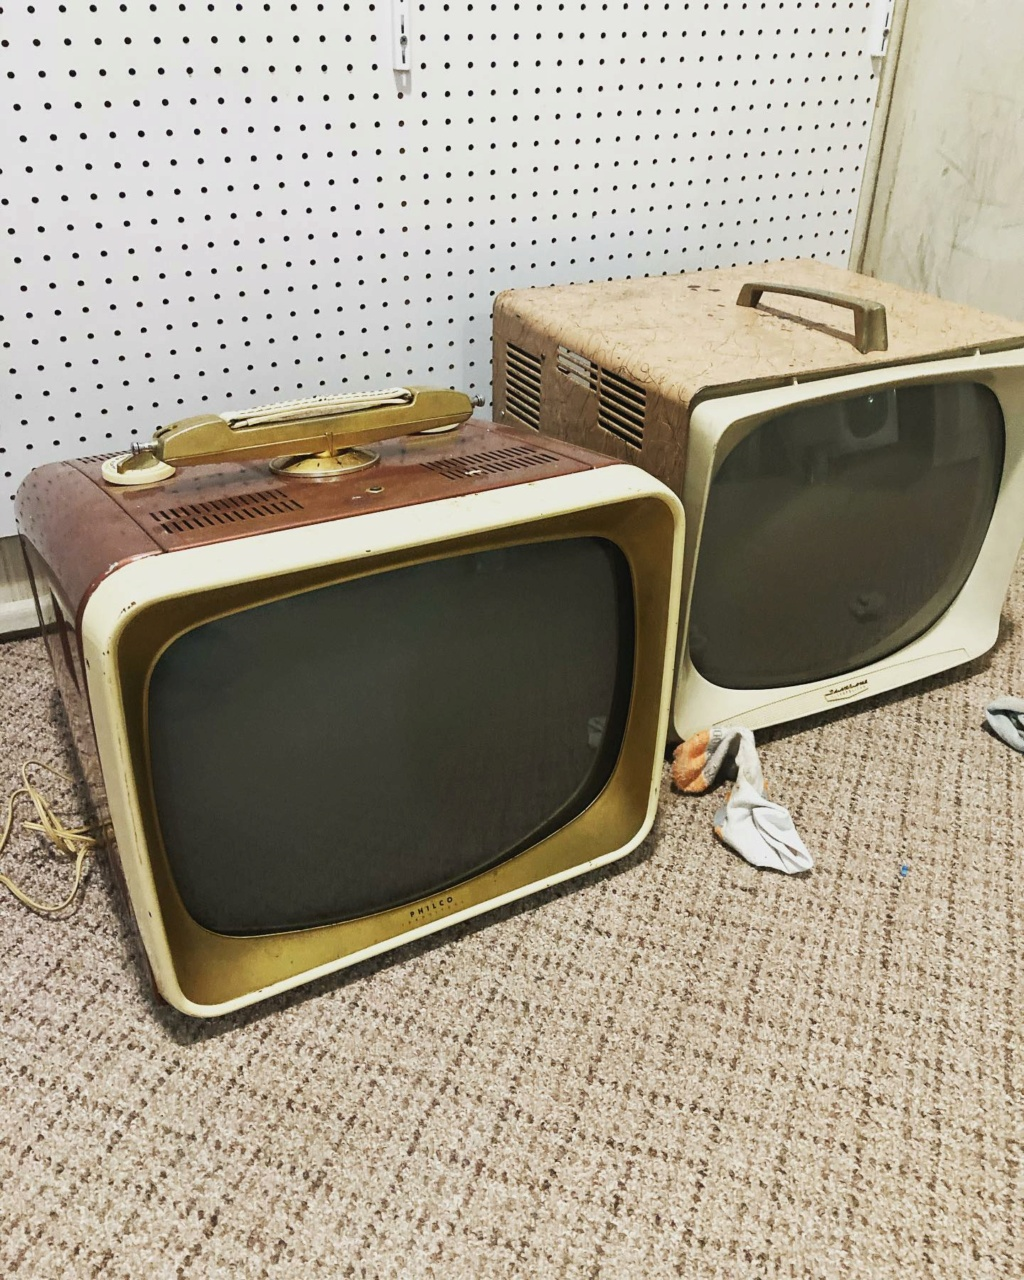 Téloches.... Vintage televisions - 1940s 1950s and 1960s tv - Page 4 17253110